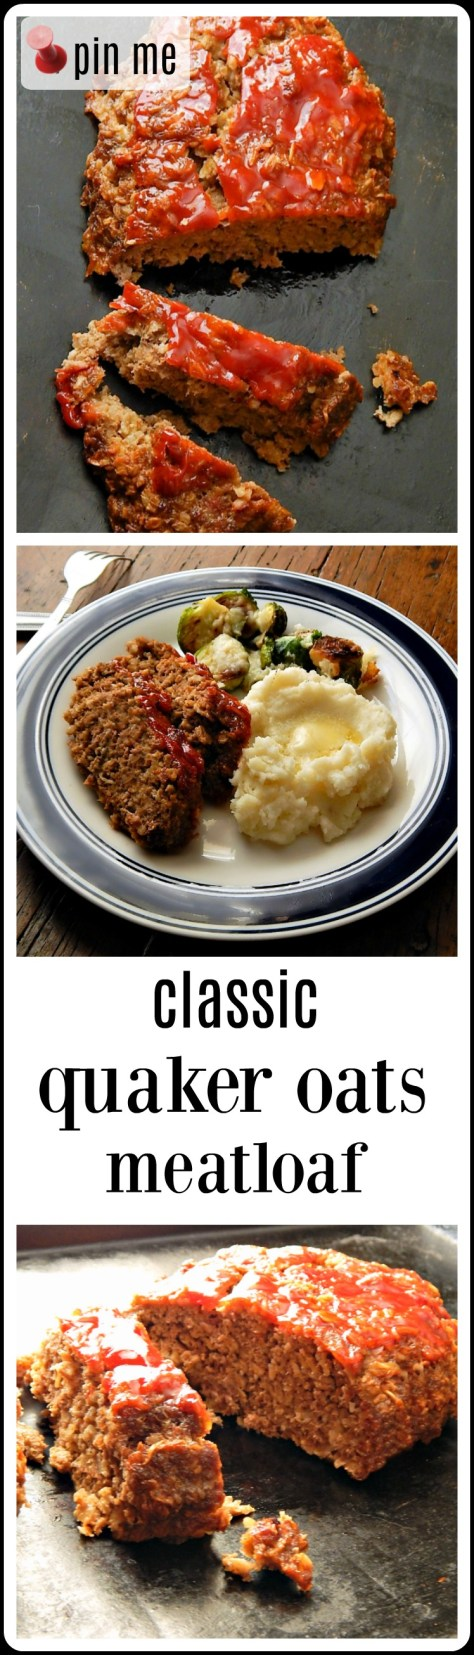 Classic Quaker Oats Meatloaf: Made with Lipton's Onion Soup Mix, so retro and classic!